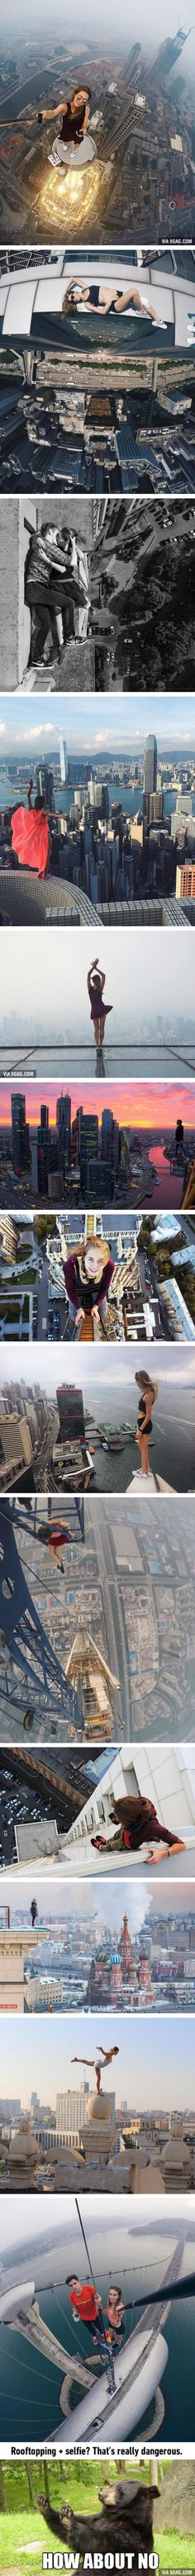 Hero!! ❤️ This Russian Girl Does Rooftopping And Takes The Riskiest Selfies Ever (Angela Nikolau)